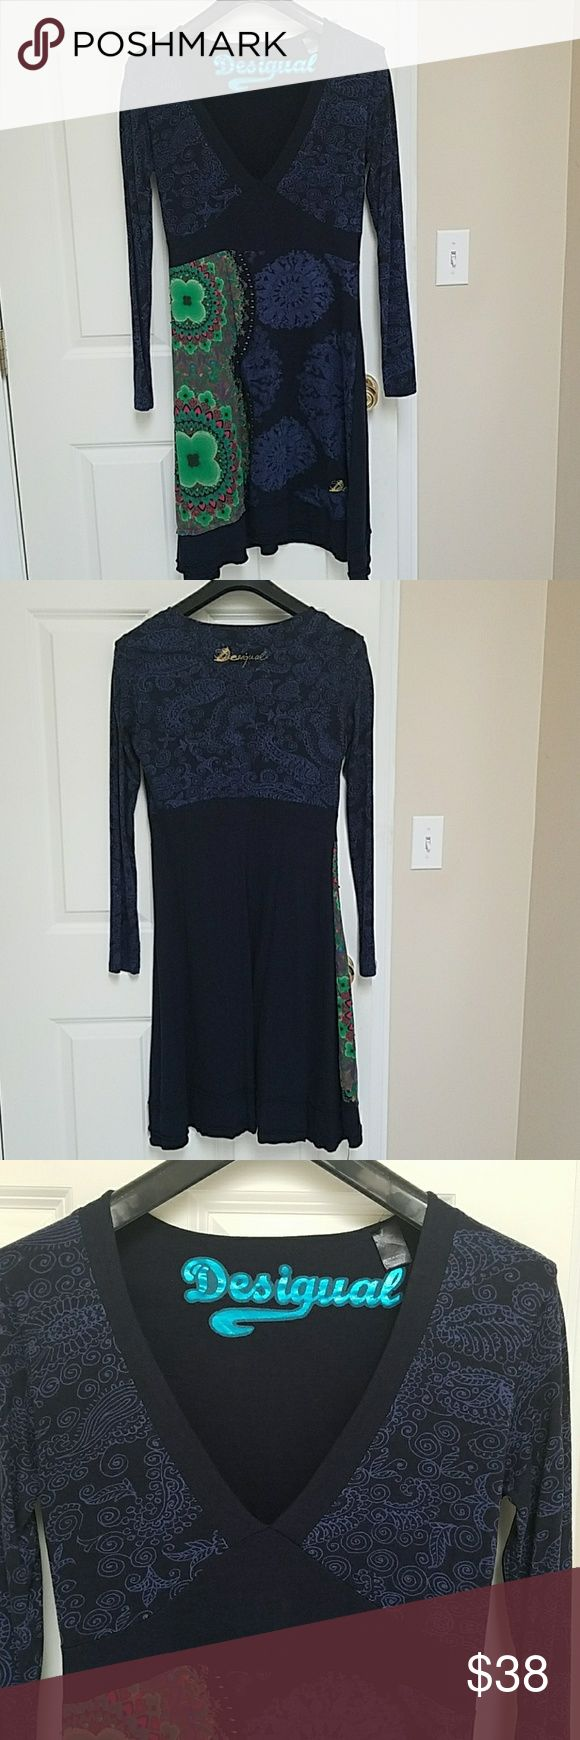 """Desigual long-sleeve dress Desigual long-sleeve v-neck dress. Reposh--great condition. Size runs smaller due to European sizing. Euro XL = USA L. 17.5"""" from armpit to armpit. 42"""" from shoulder to hem.   No Trades. Lowball offers will be ignored or declined. Thank you. Desigual Dresses Long Sleeve"""